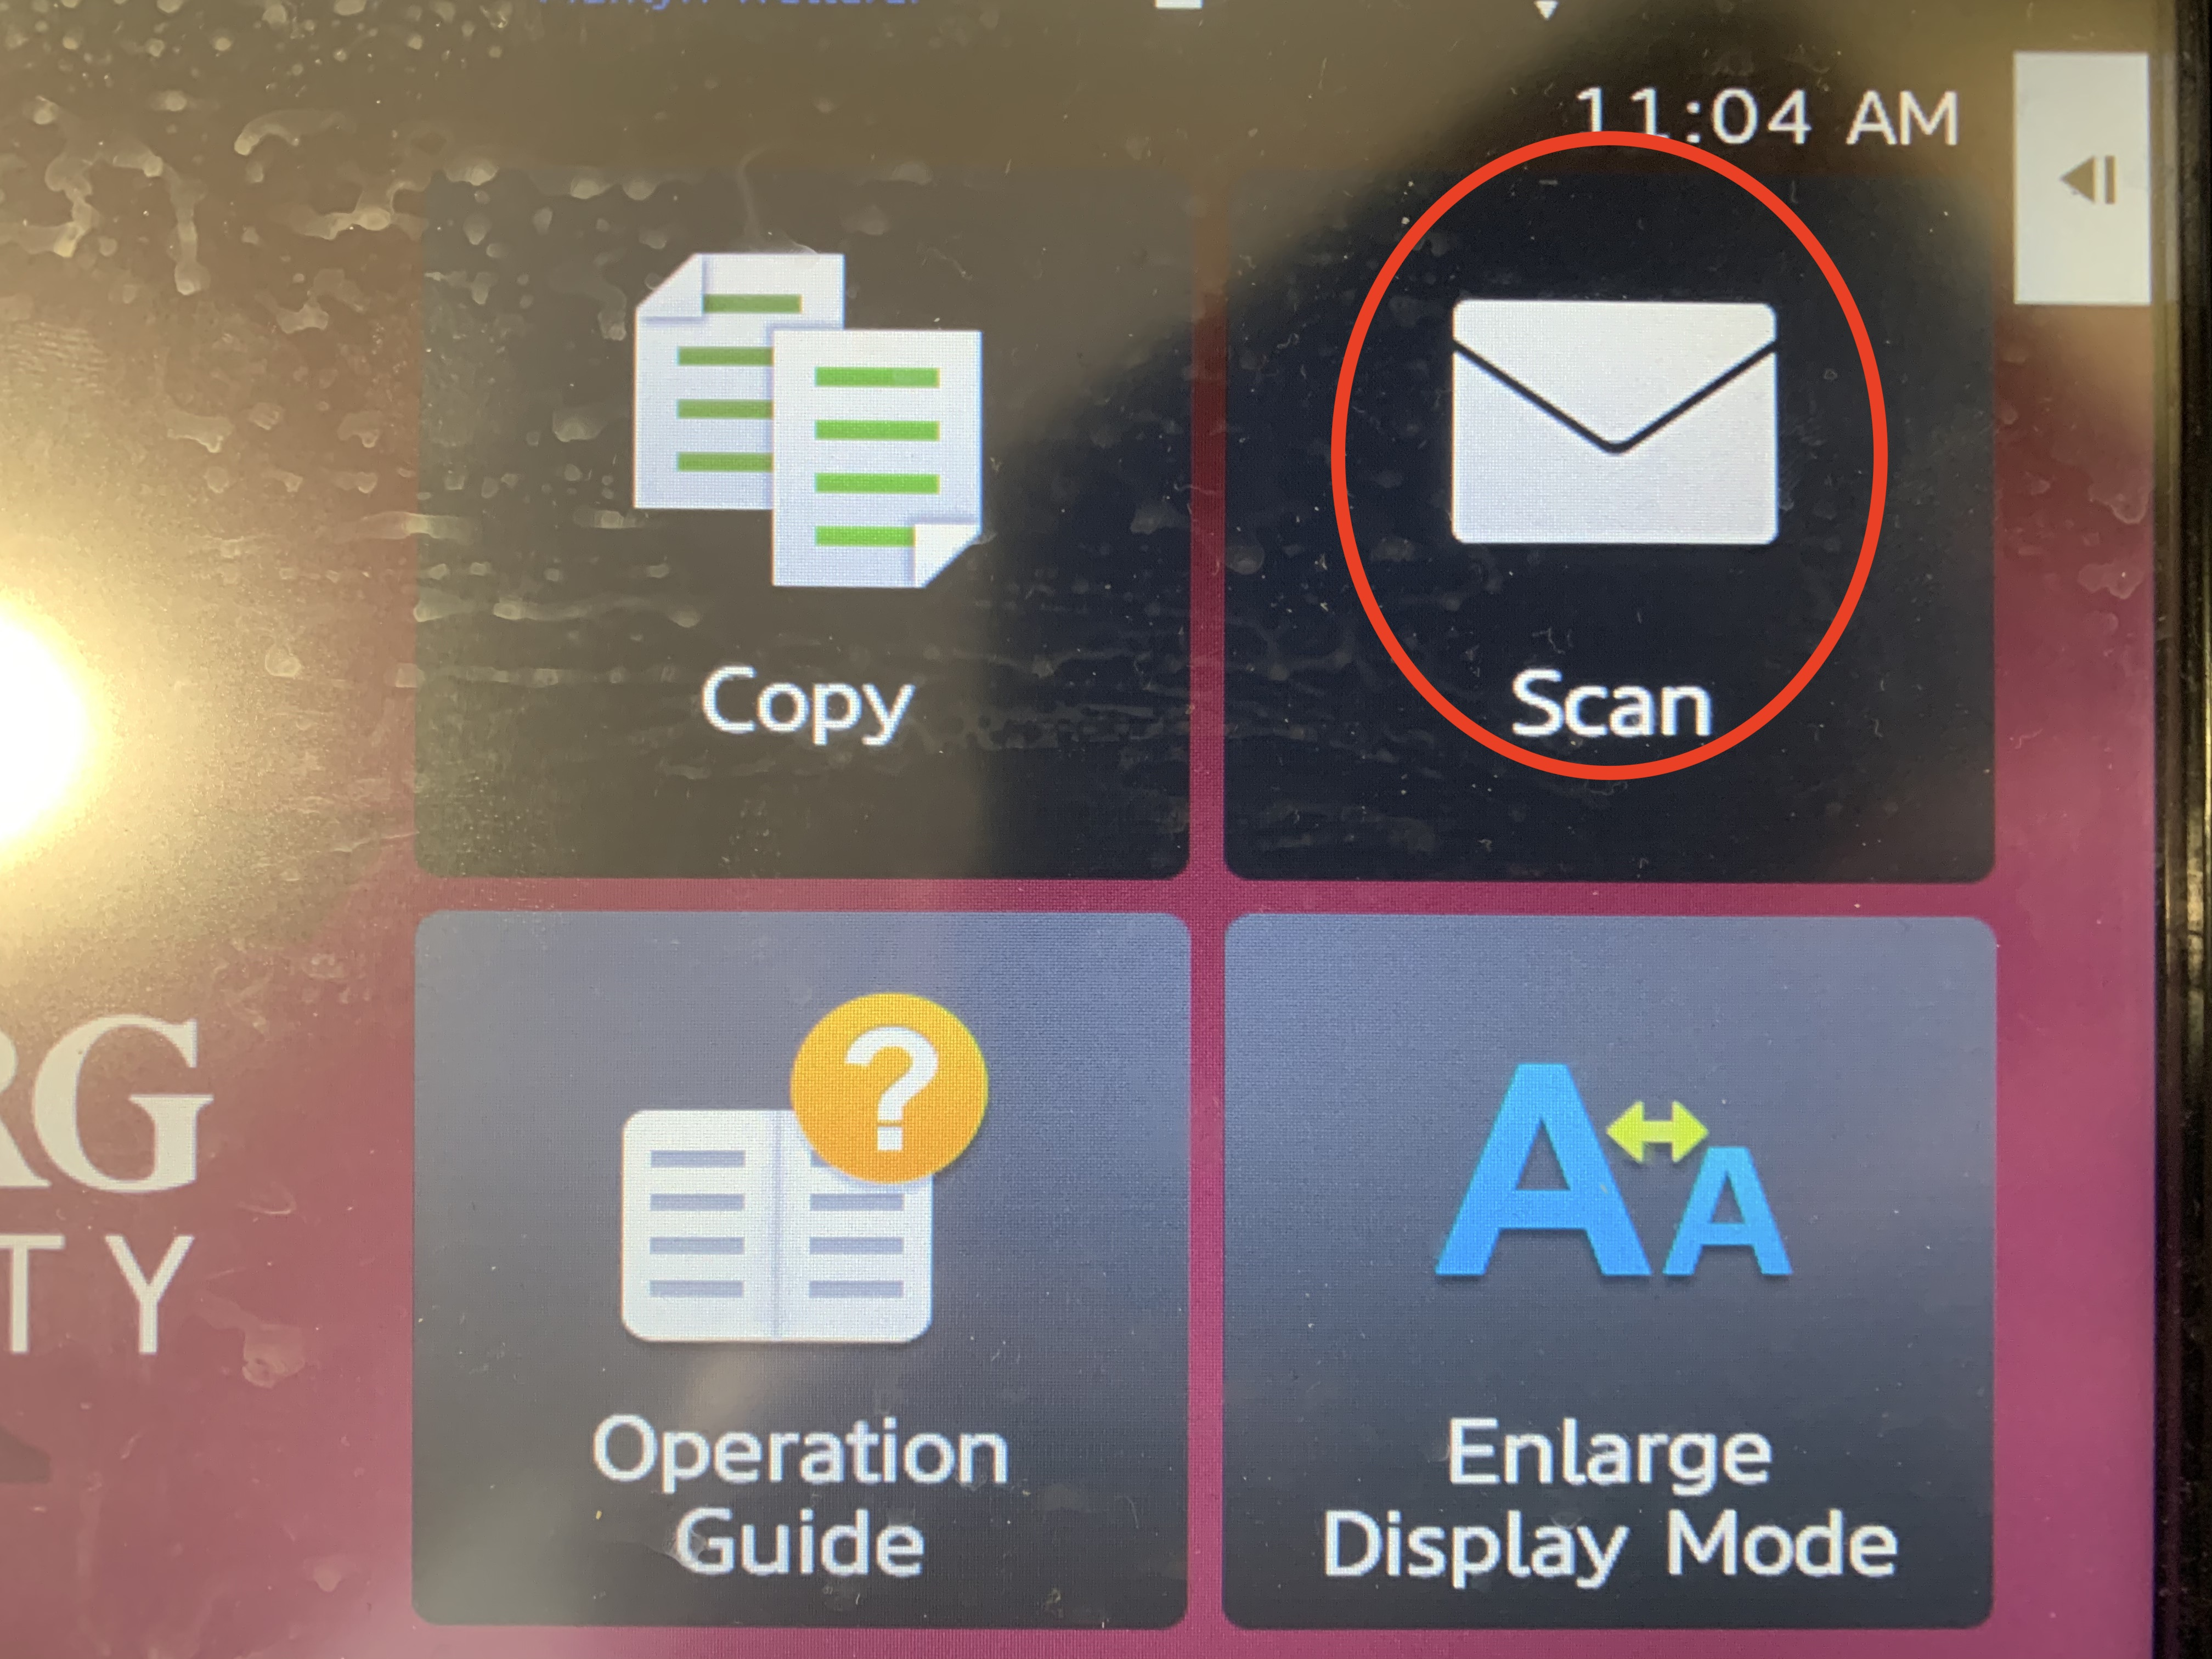 Shows four possible options: copy, scan, operation guide, enlarge display mode